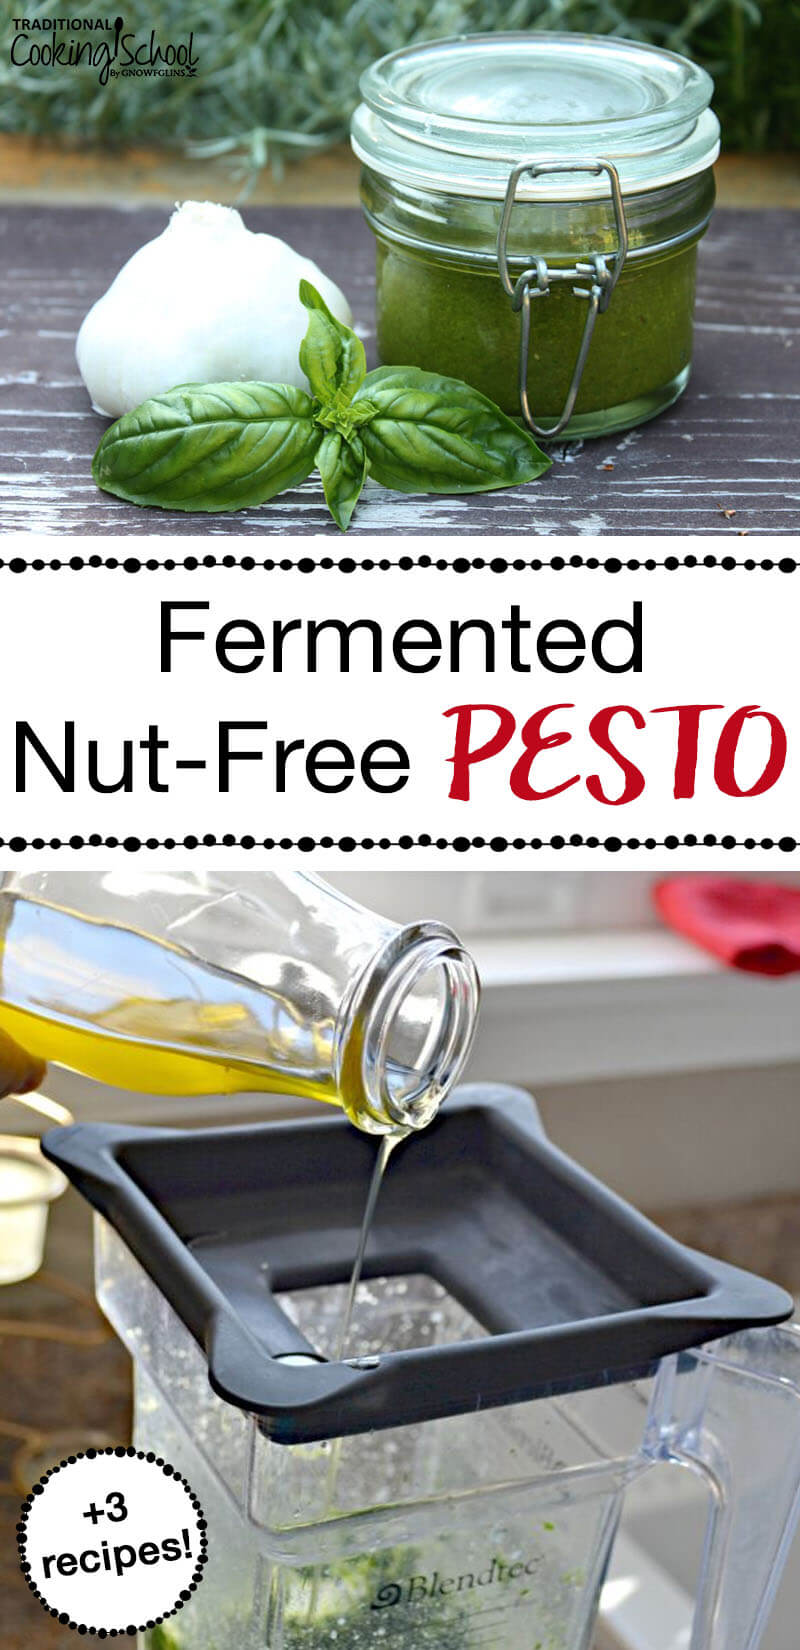 Fermented Nut-Free Pesto (+3 recipes) | Ahhhh, pesto. It's so simple, yet adds such complexity to hot or cold dishes. It has so few ingredients and takes so little time to make. In the case of this pesto, it's nut-free and also packs a powerful probiotic punch. | TraditionalCookingSchool.com